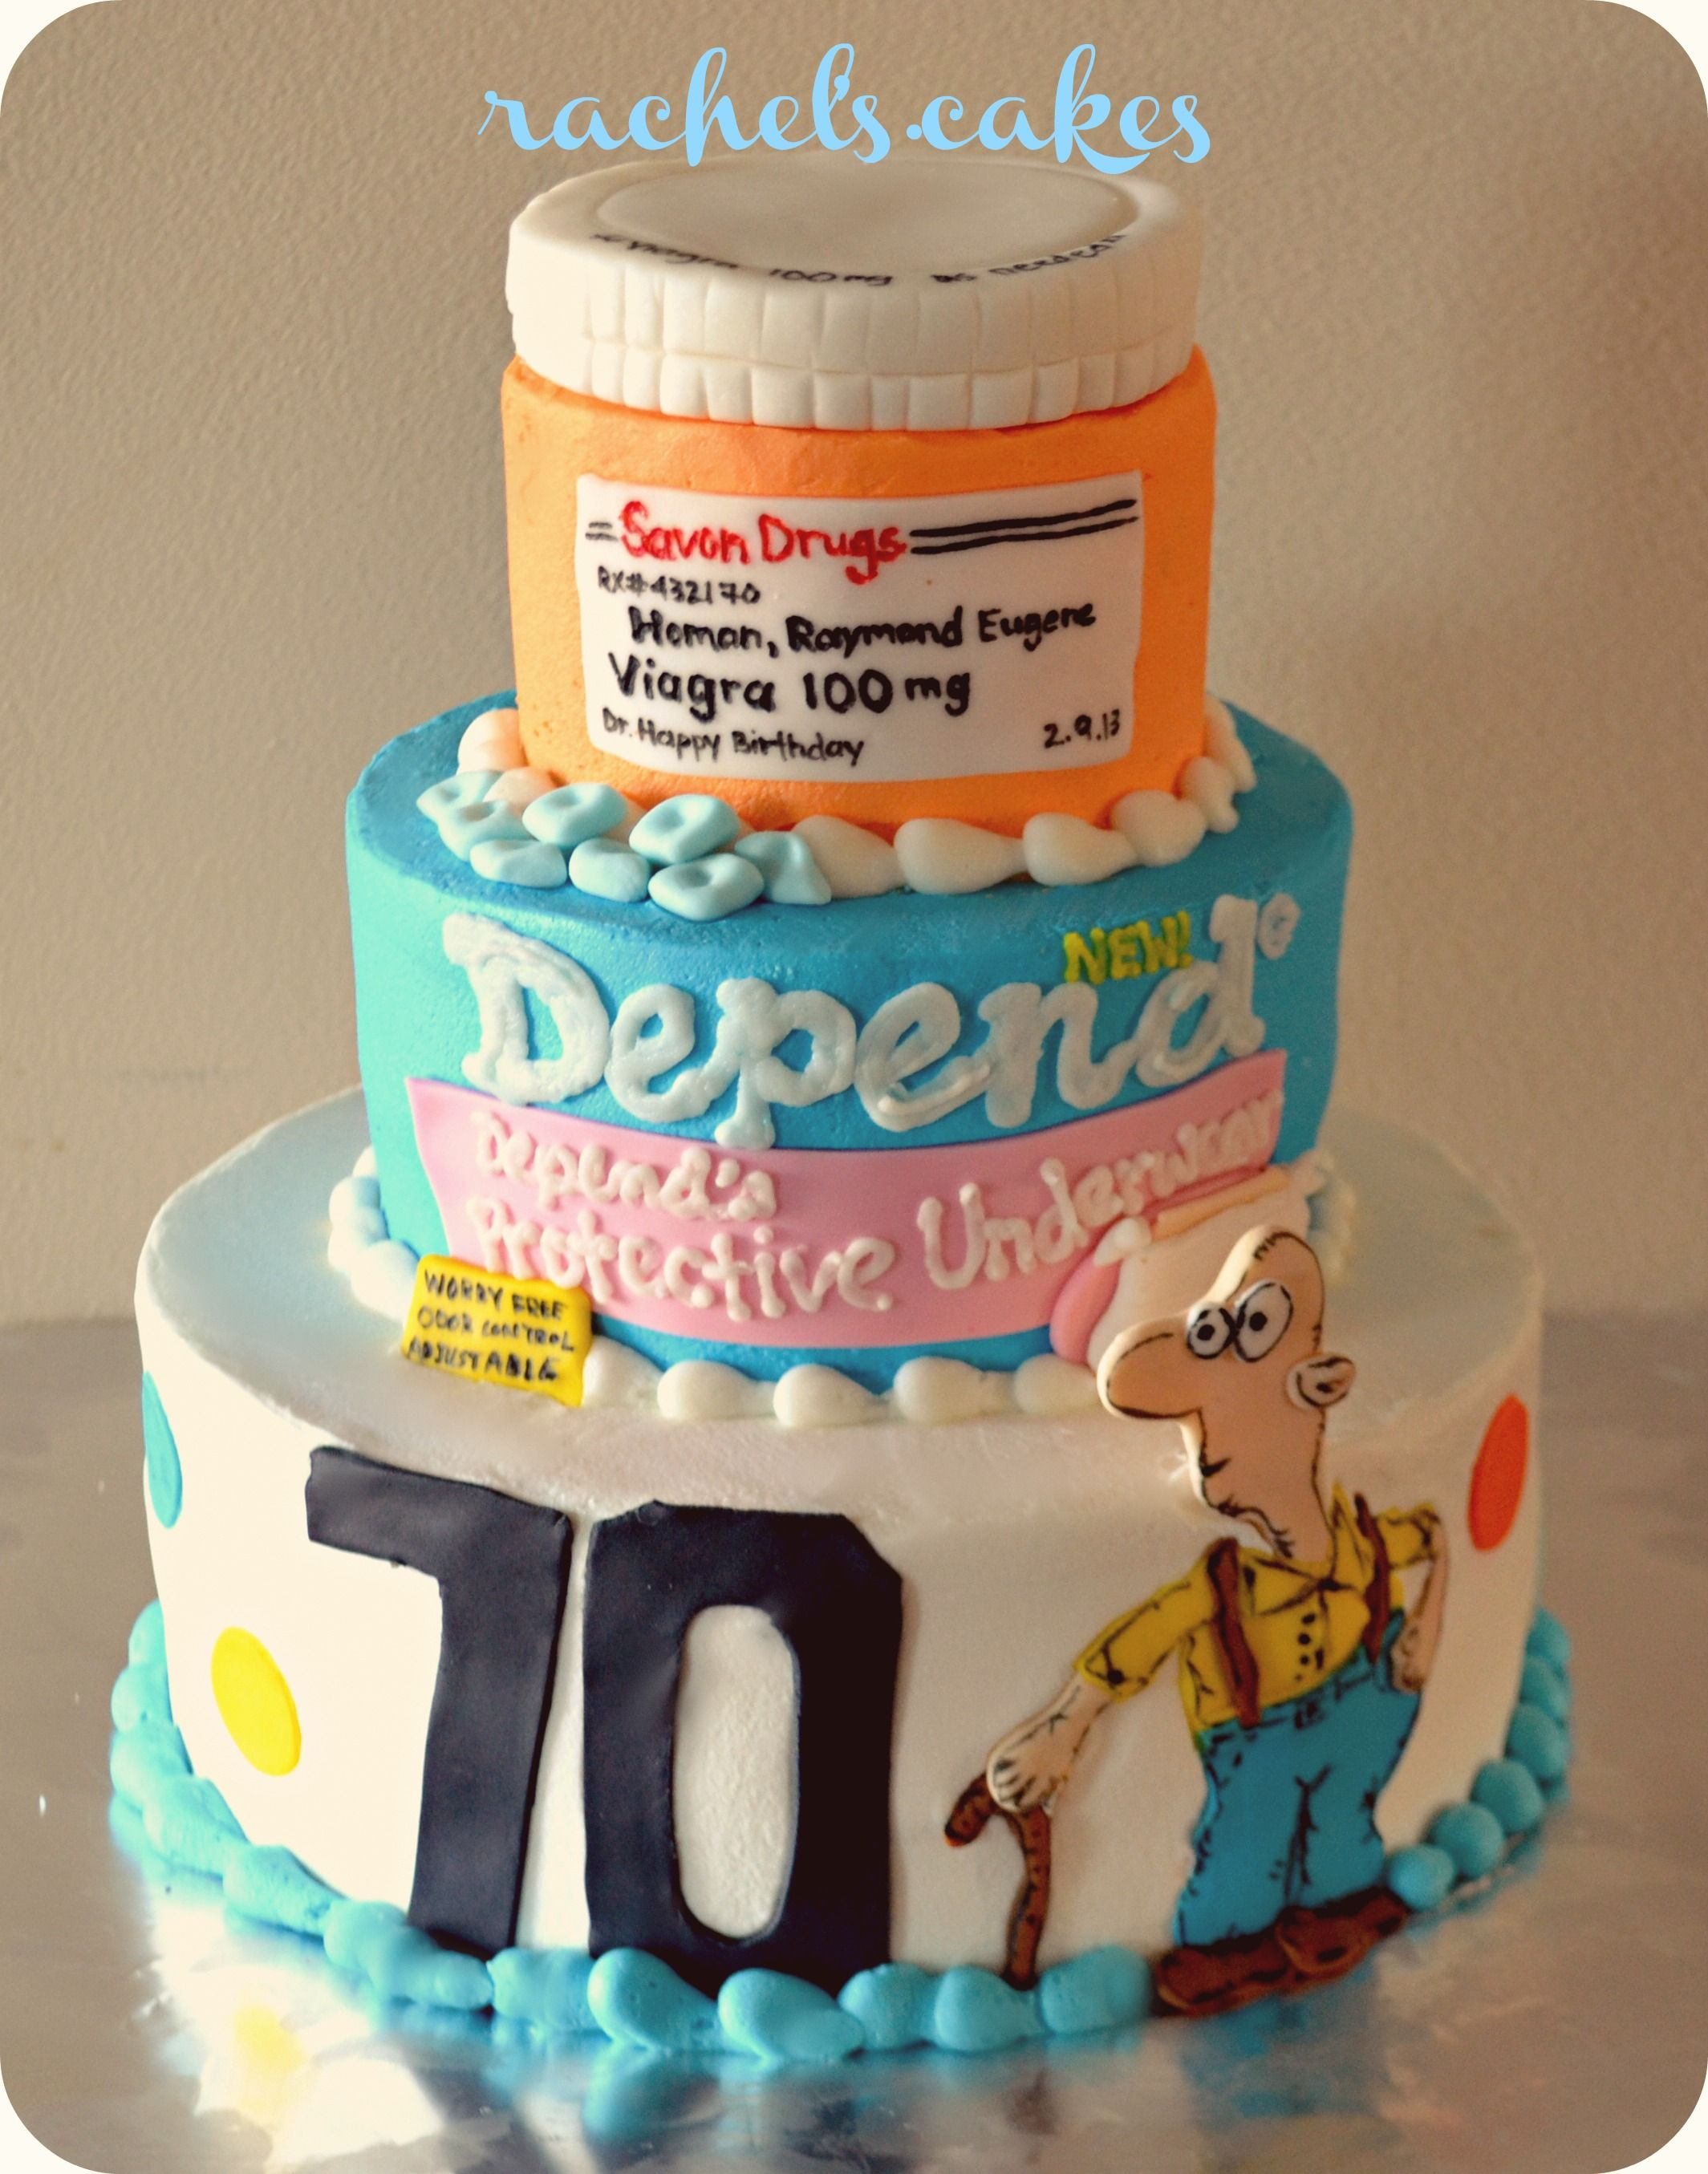 70th Quot Old Man Quot Birthday Cake Depends And Viagra Lol